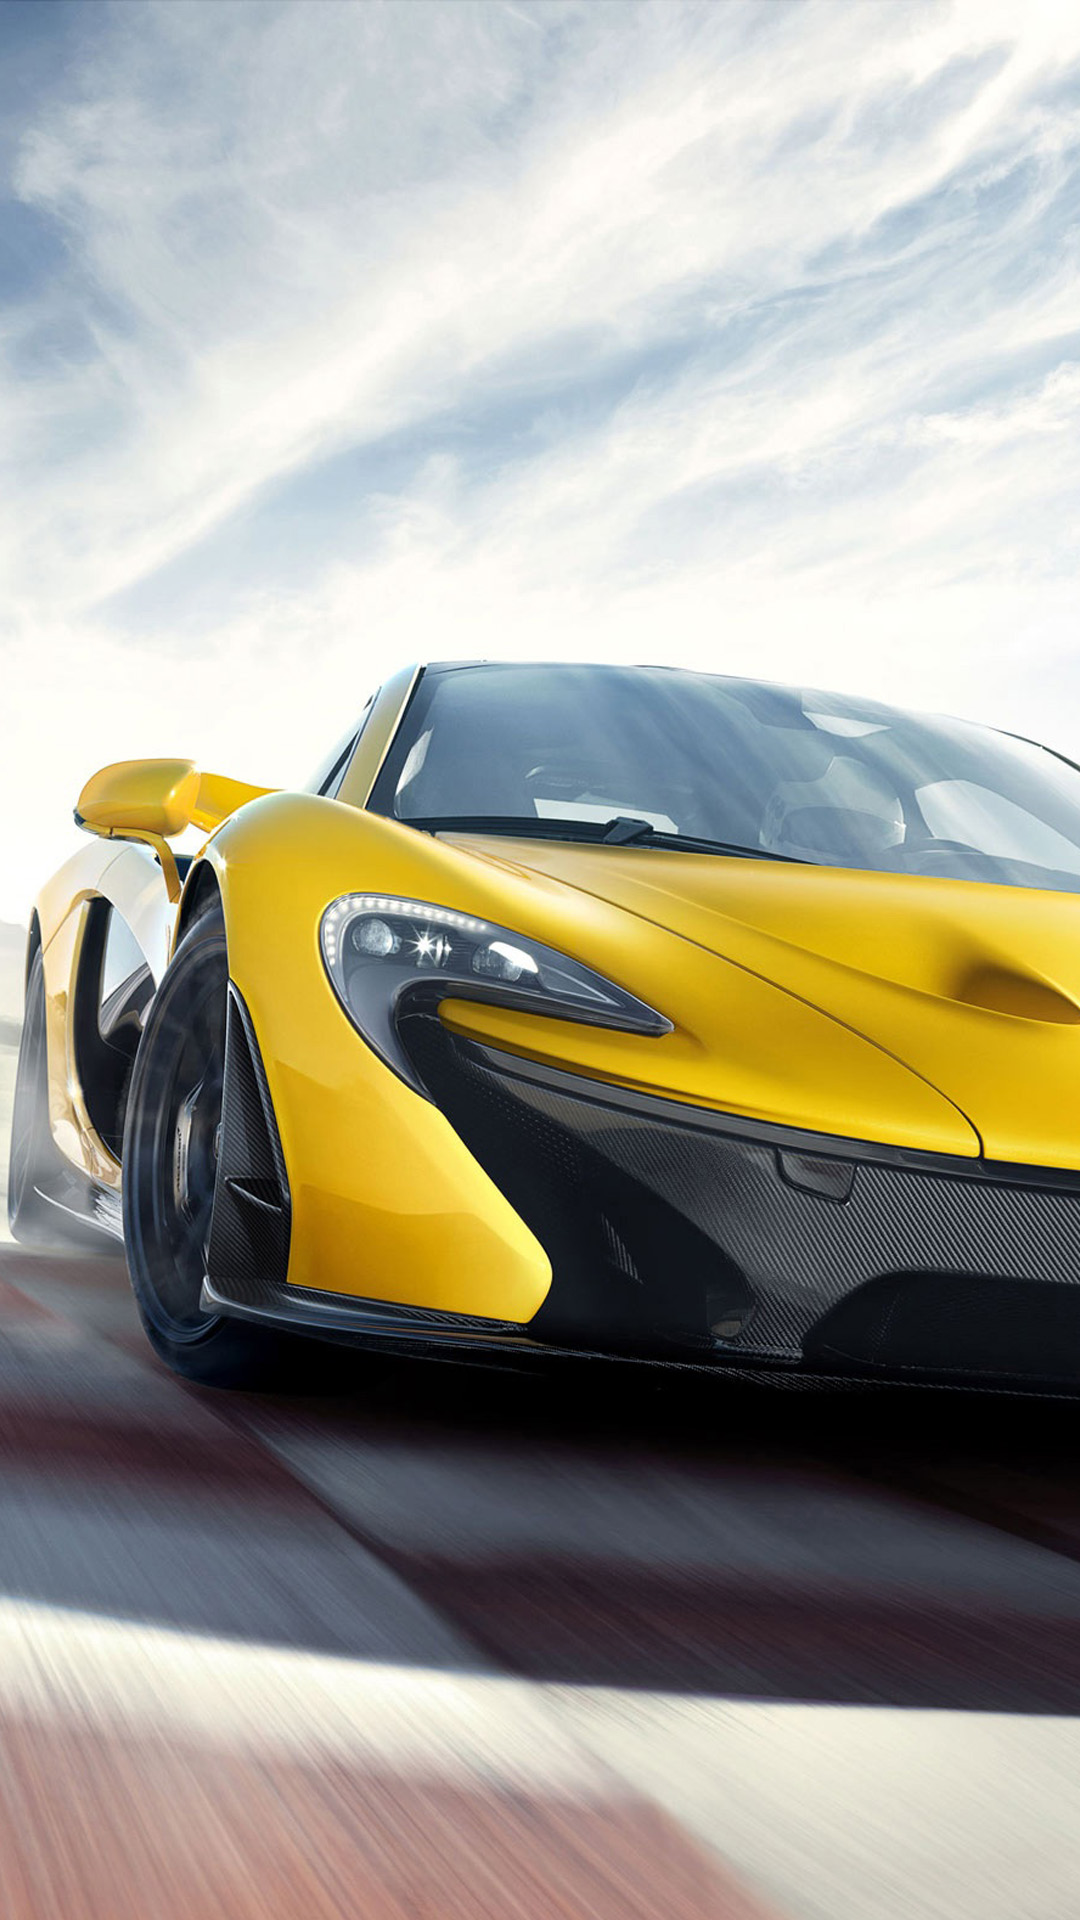 Htc One M8 Wallpaper Hd Mclaren P1 2014 Best Htc One Wallpapers Free And Easy